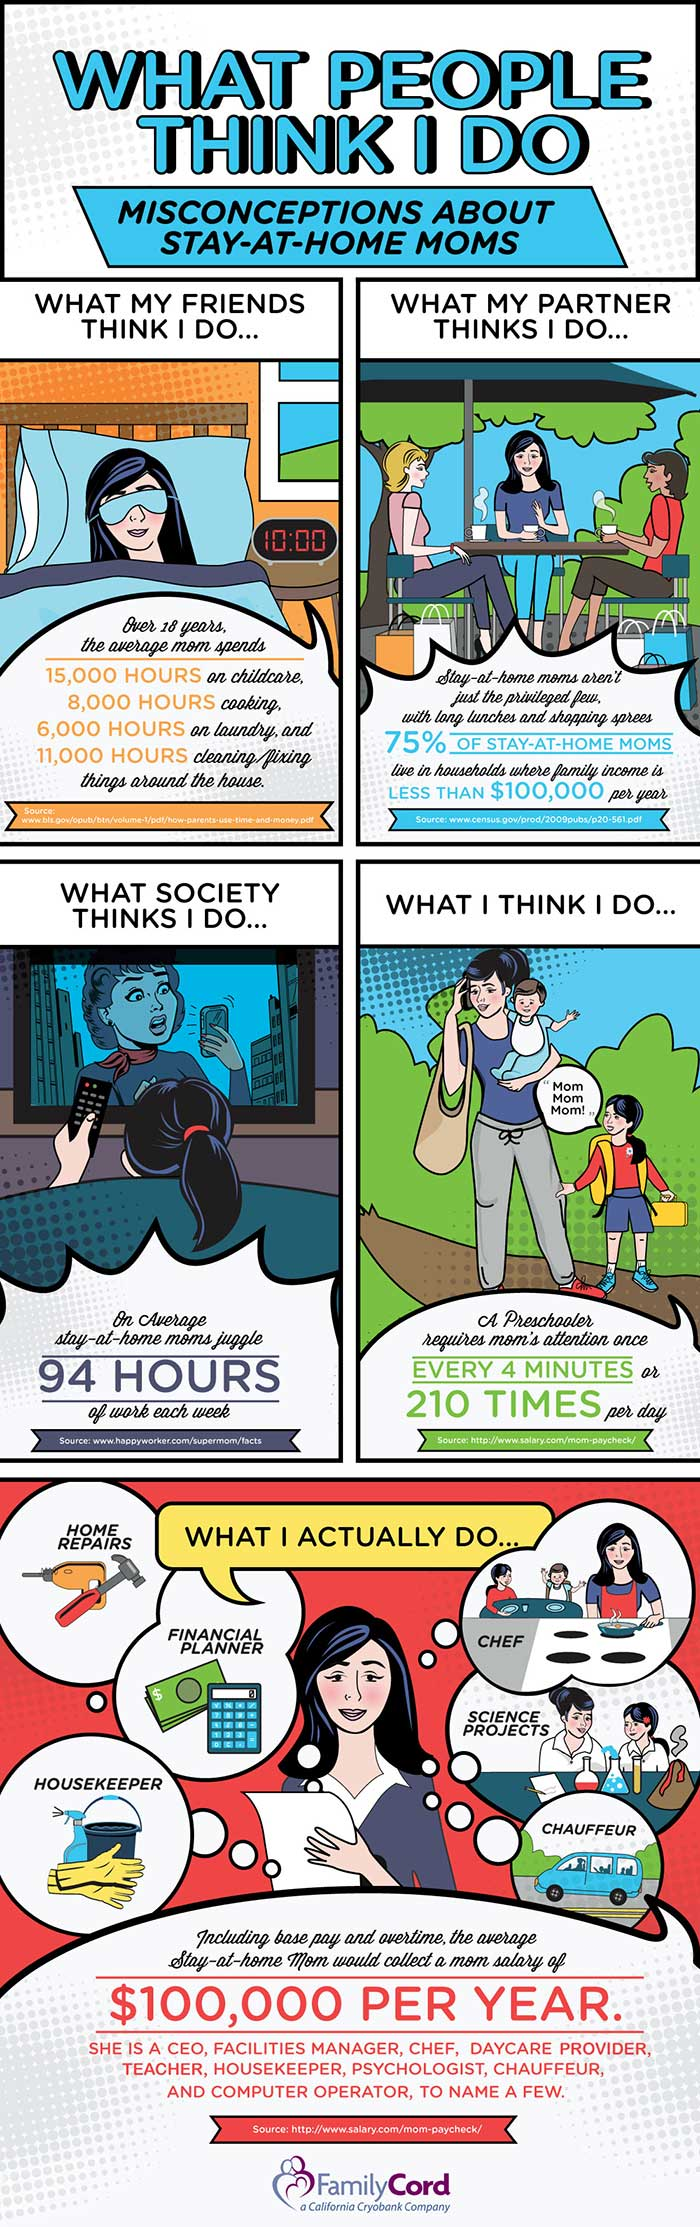 What People Think Stay-At-Home-Moms Do-Infographic